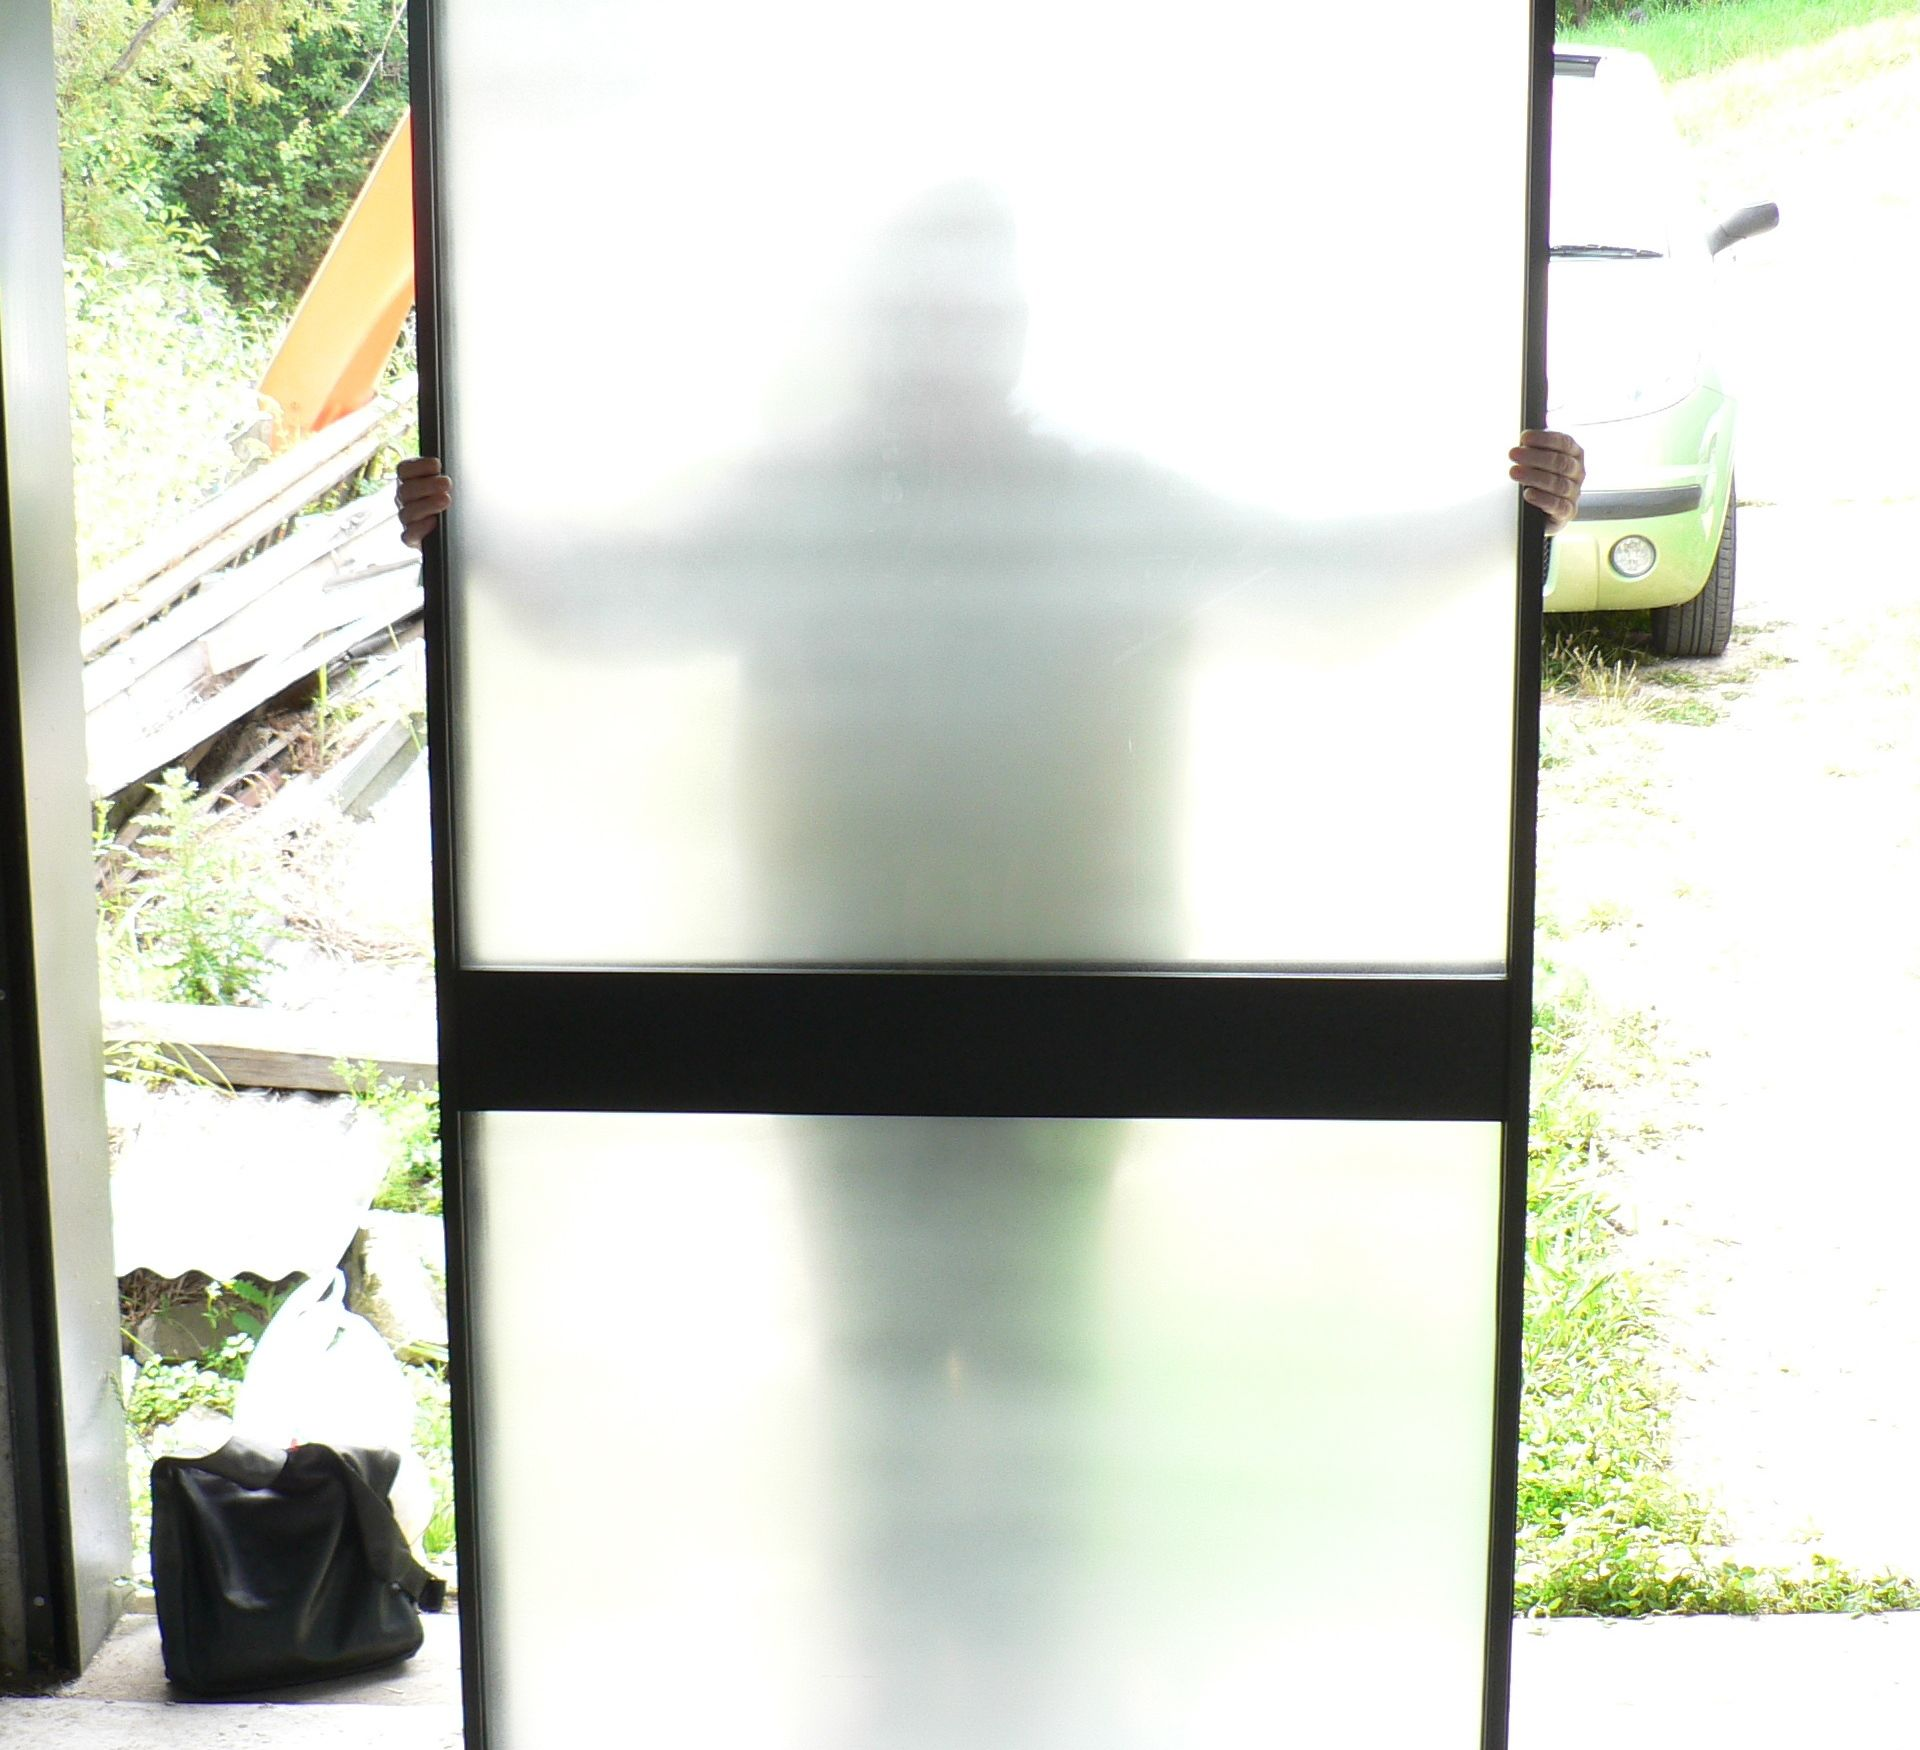 Spray Or Roll On Your Own Window Door Glass Frosting Glass Door Glass Wardrobe Windows And Doors